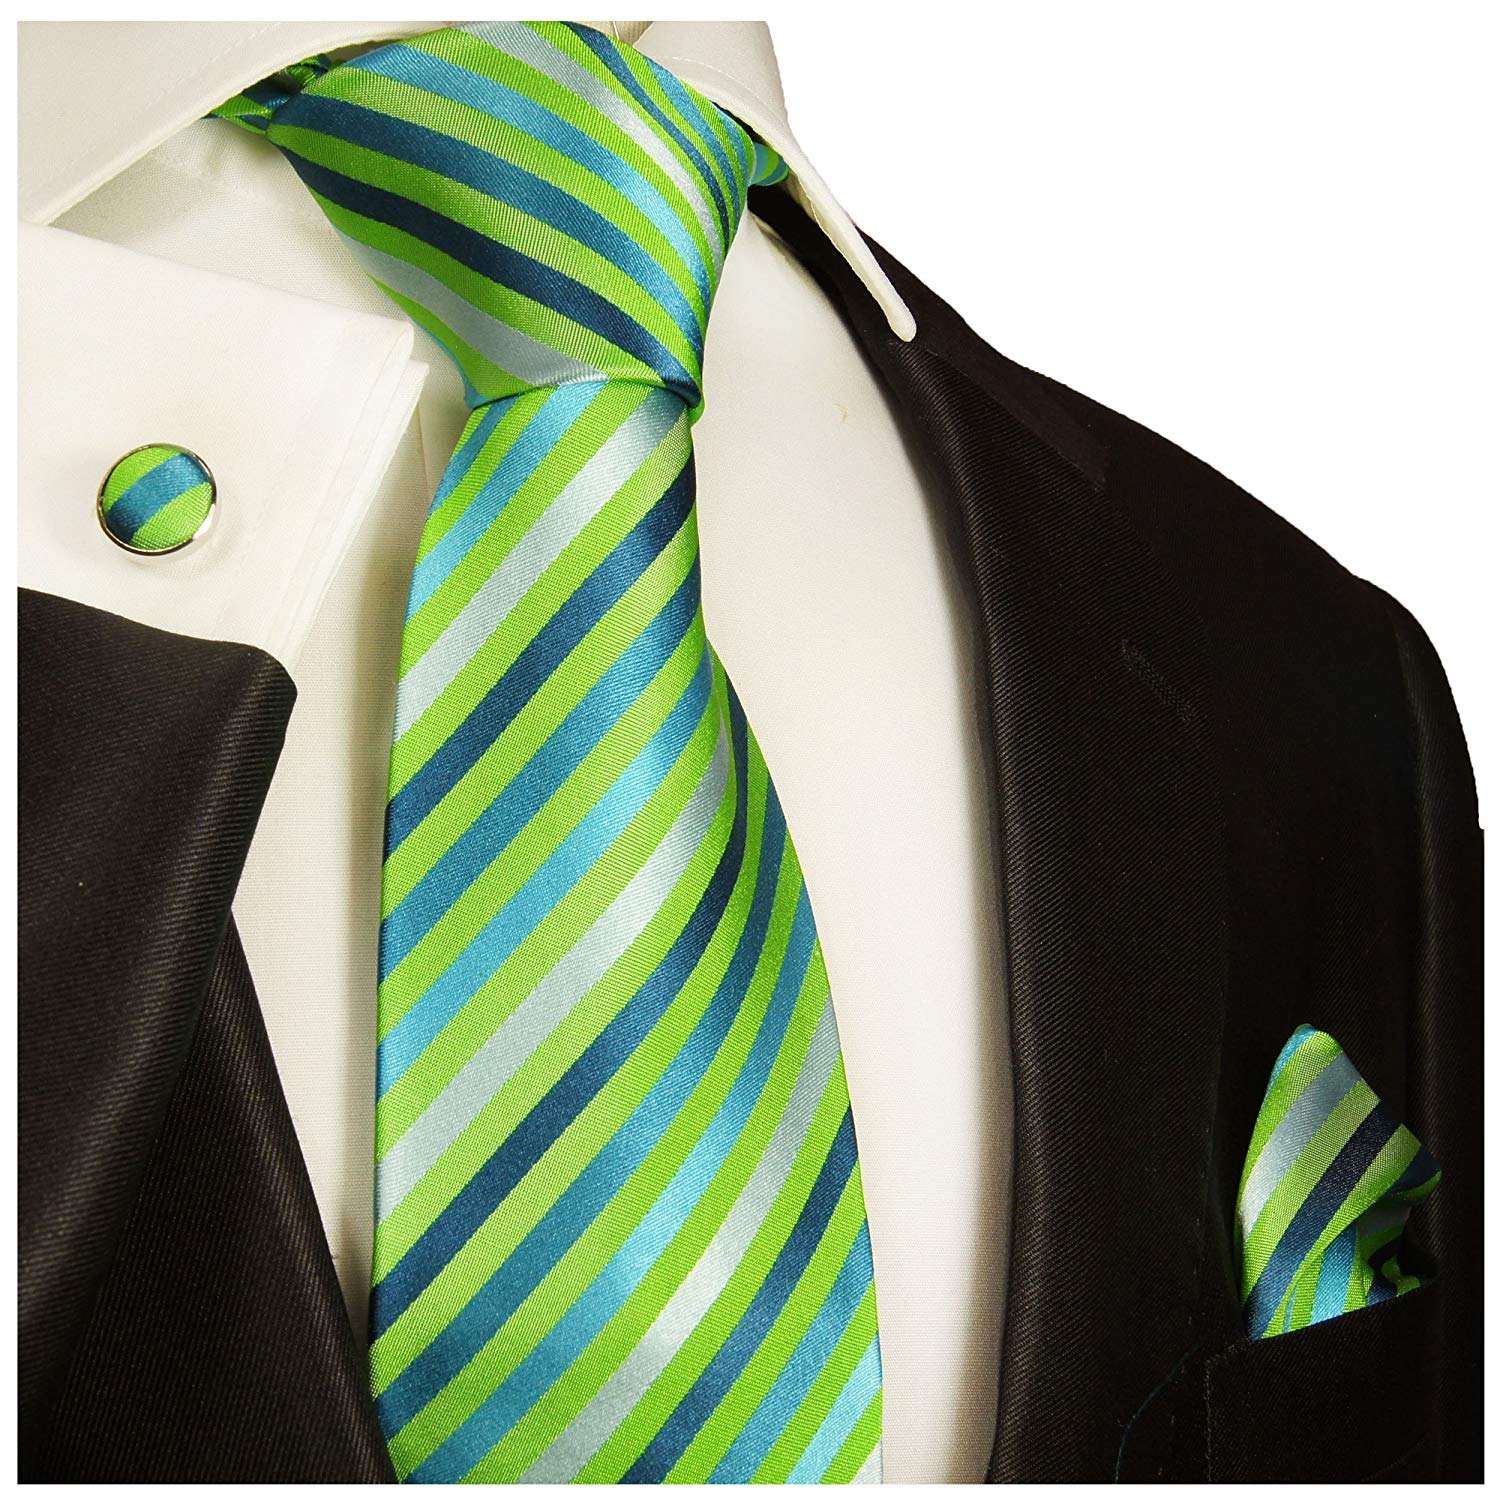 a7c83be3e7cb Get Quotations · Green Striped Silk Tie, Pocket Square and Cufflinks by Paul  Malone